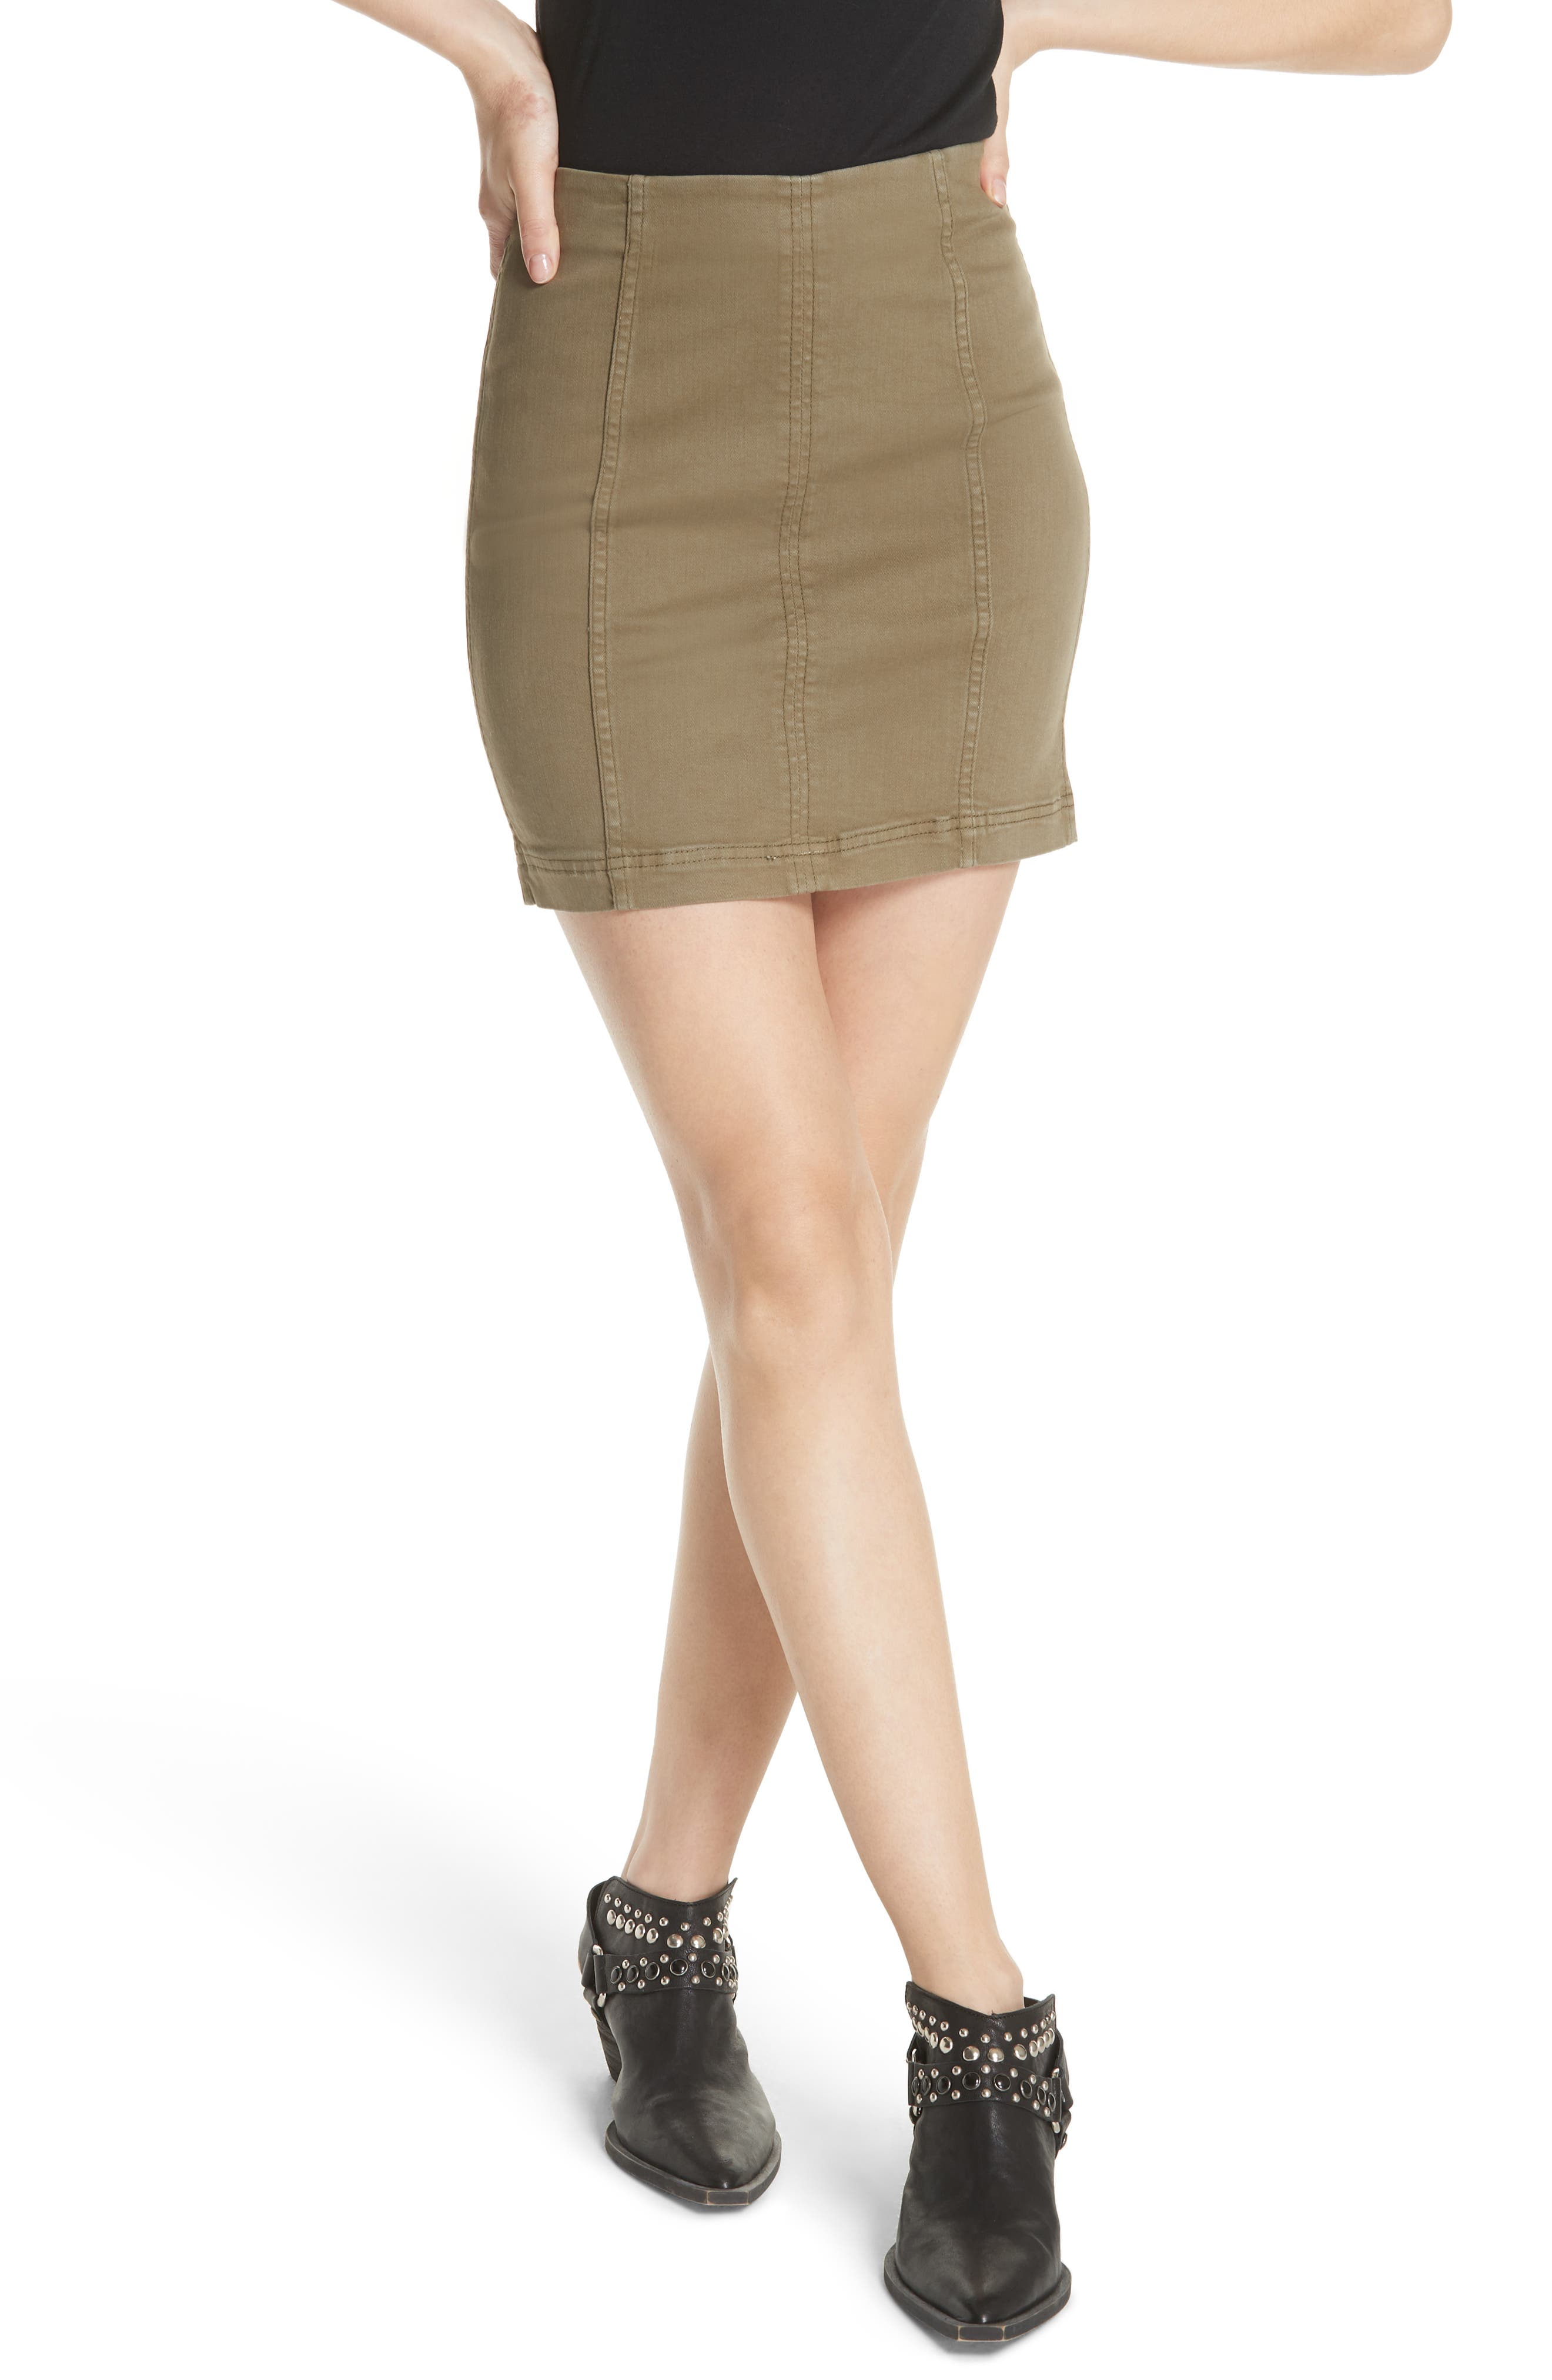 FREE PEOPLE We the Free by Free People Modern Miniskirt, Main, color, ARMY